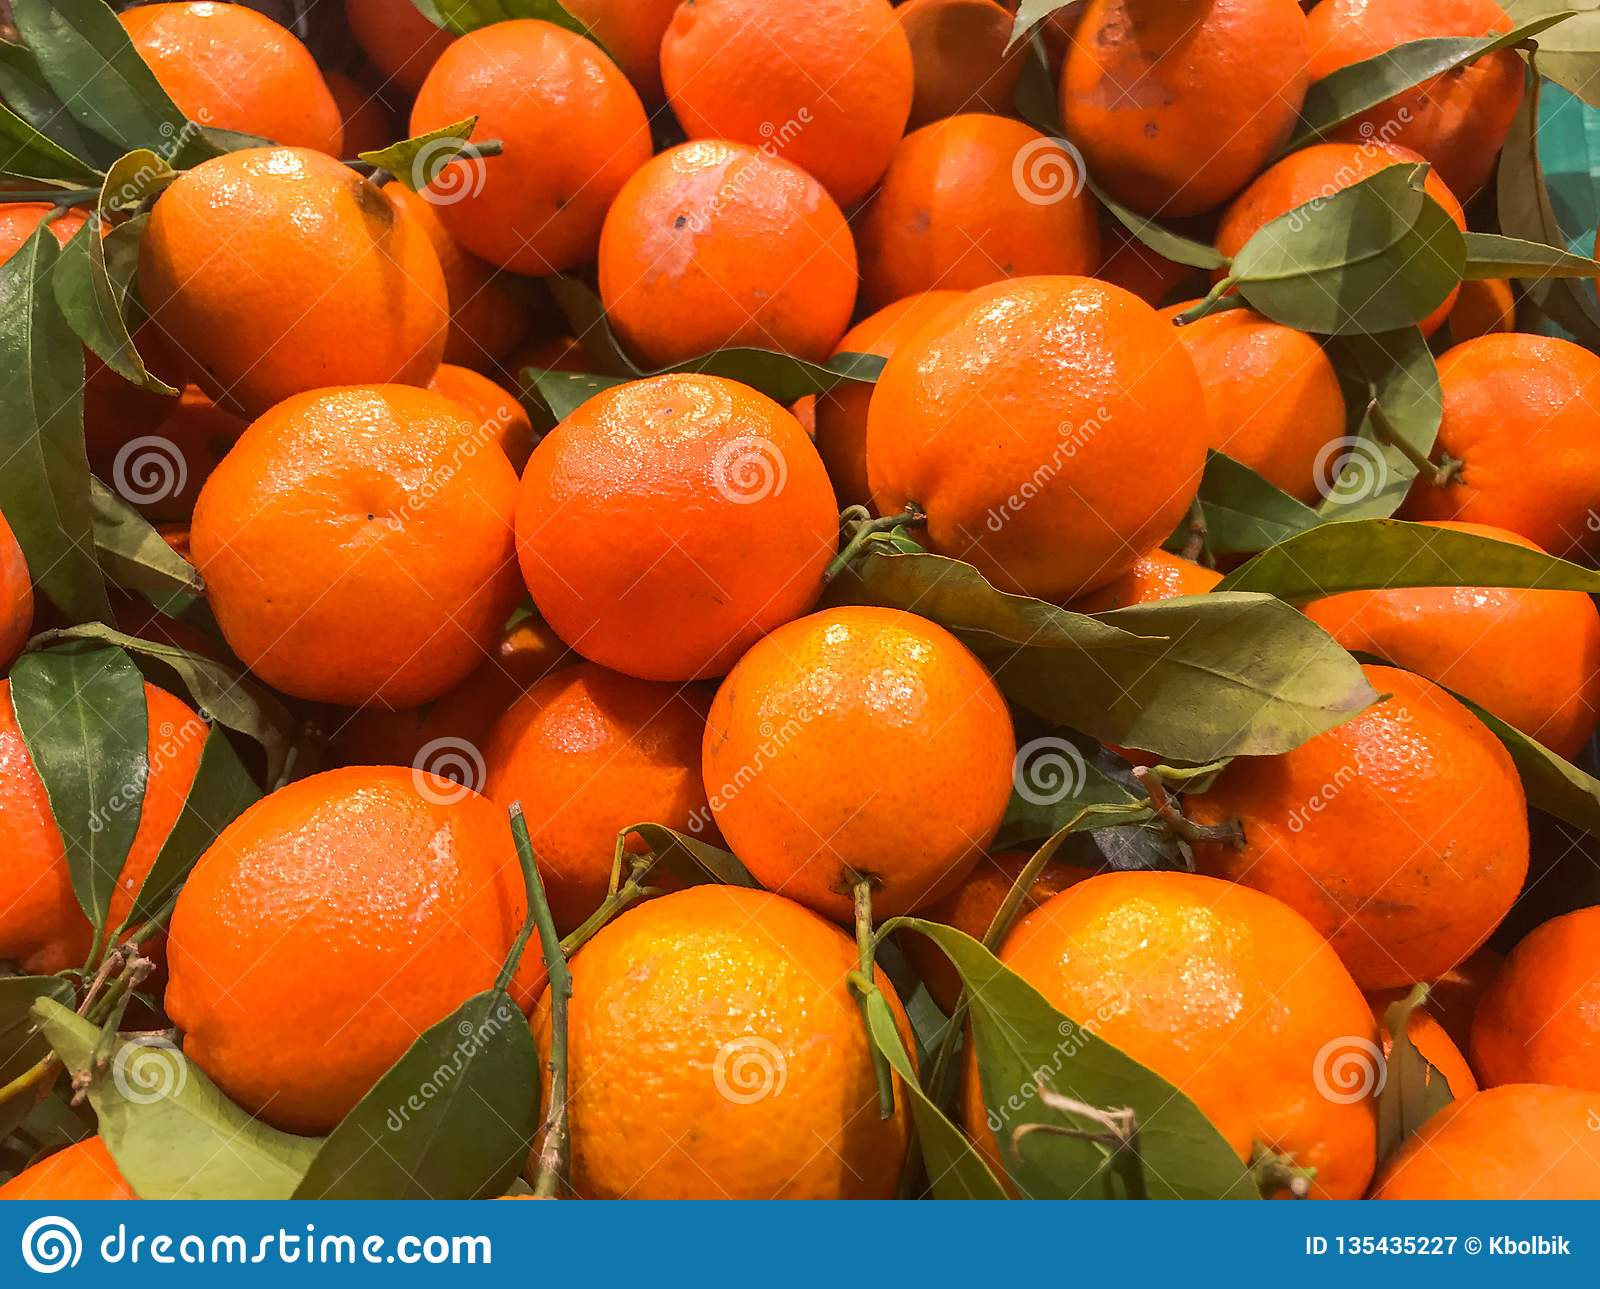 Beautiful yellow natural sweet tasty ripe soft round bright bright tangerines, fruits, clementines. Texture, background